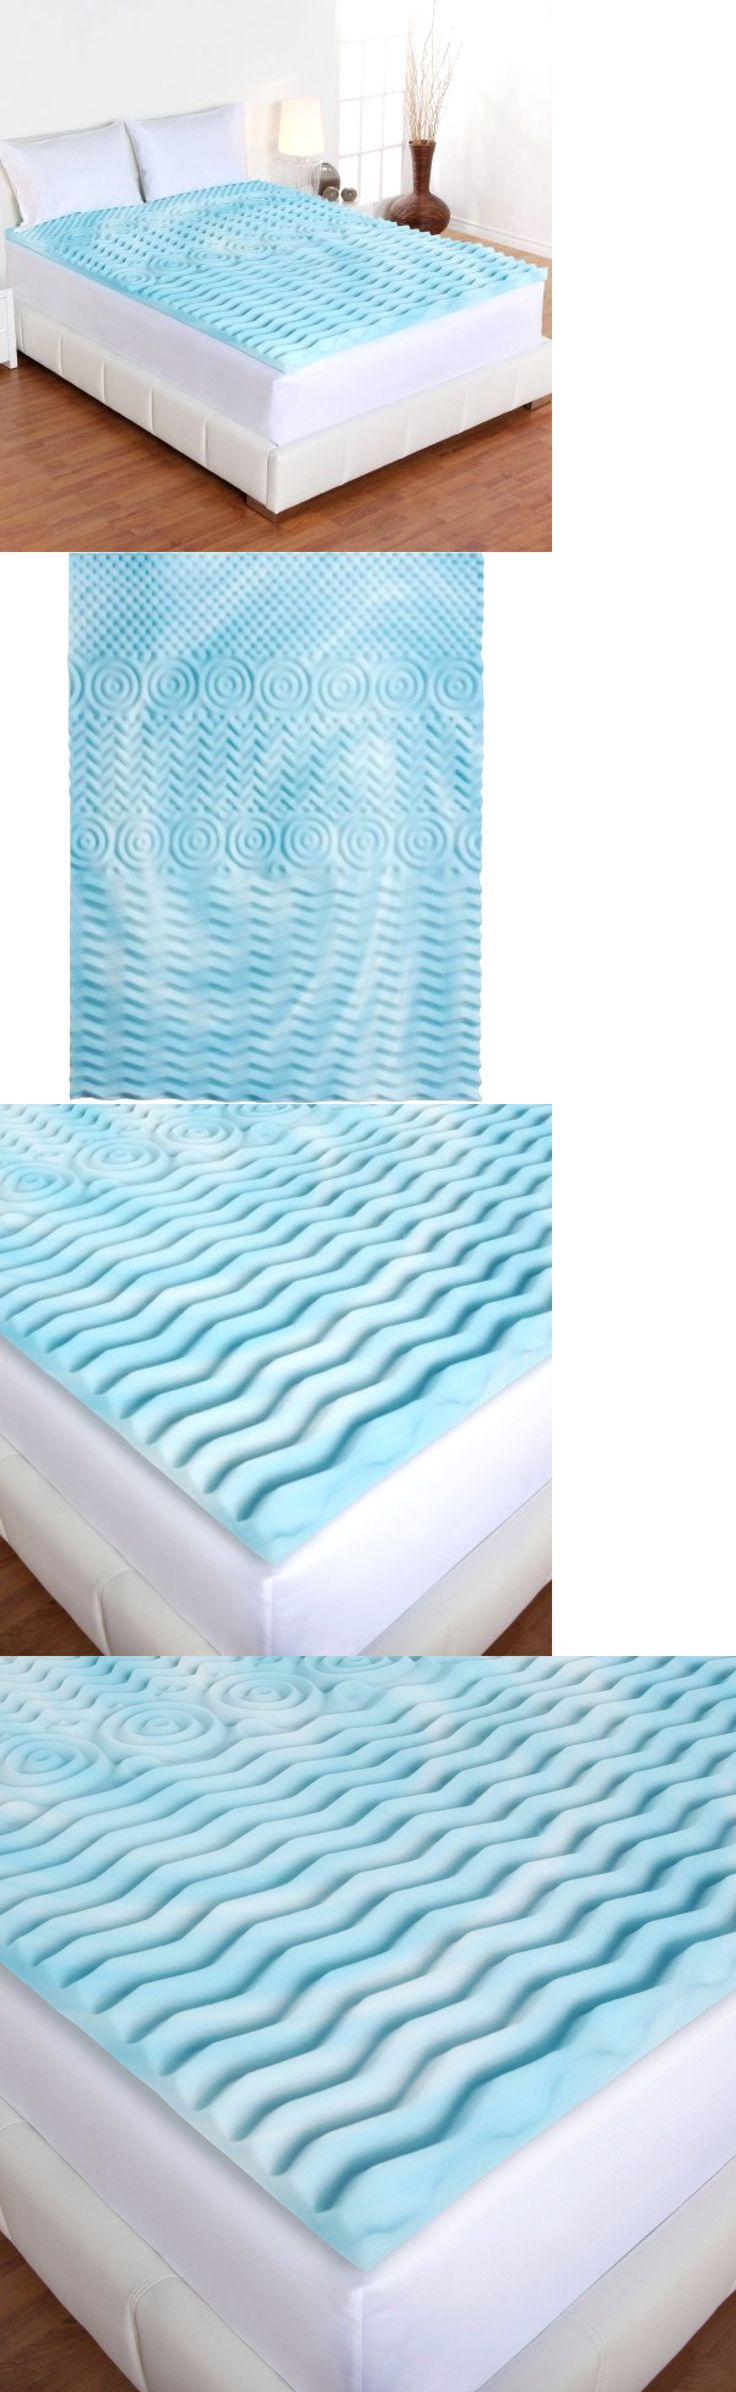 mattress pads and feather beds cooling gel foam 2 queen mattress bed topper 5